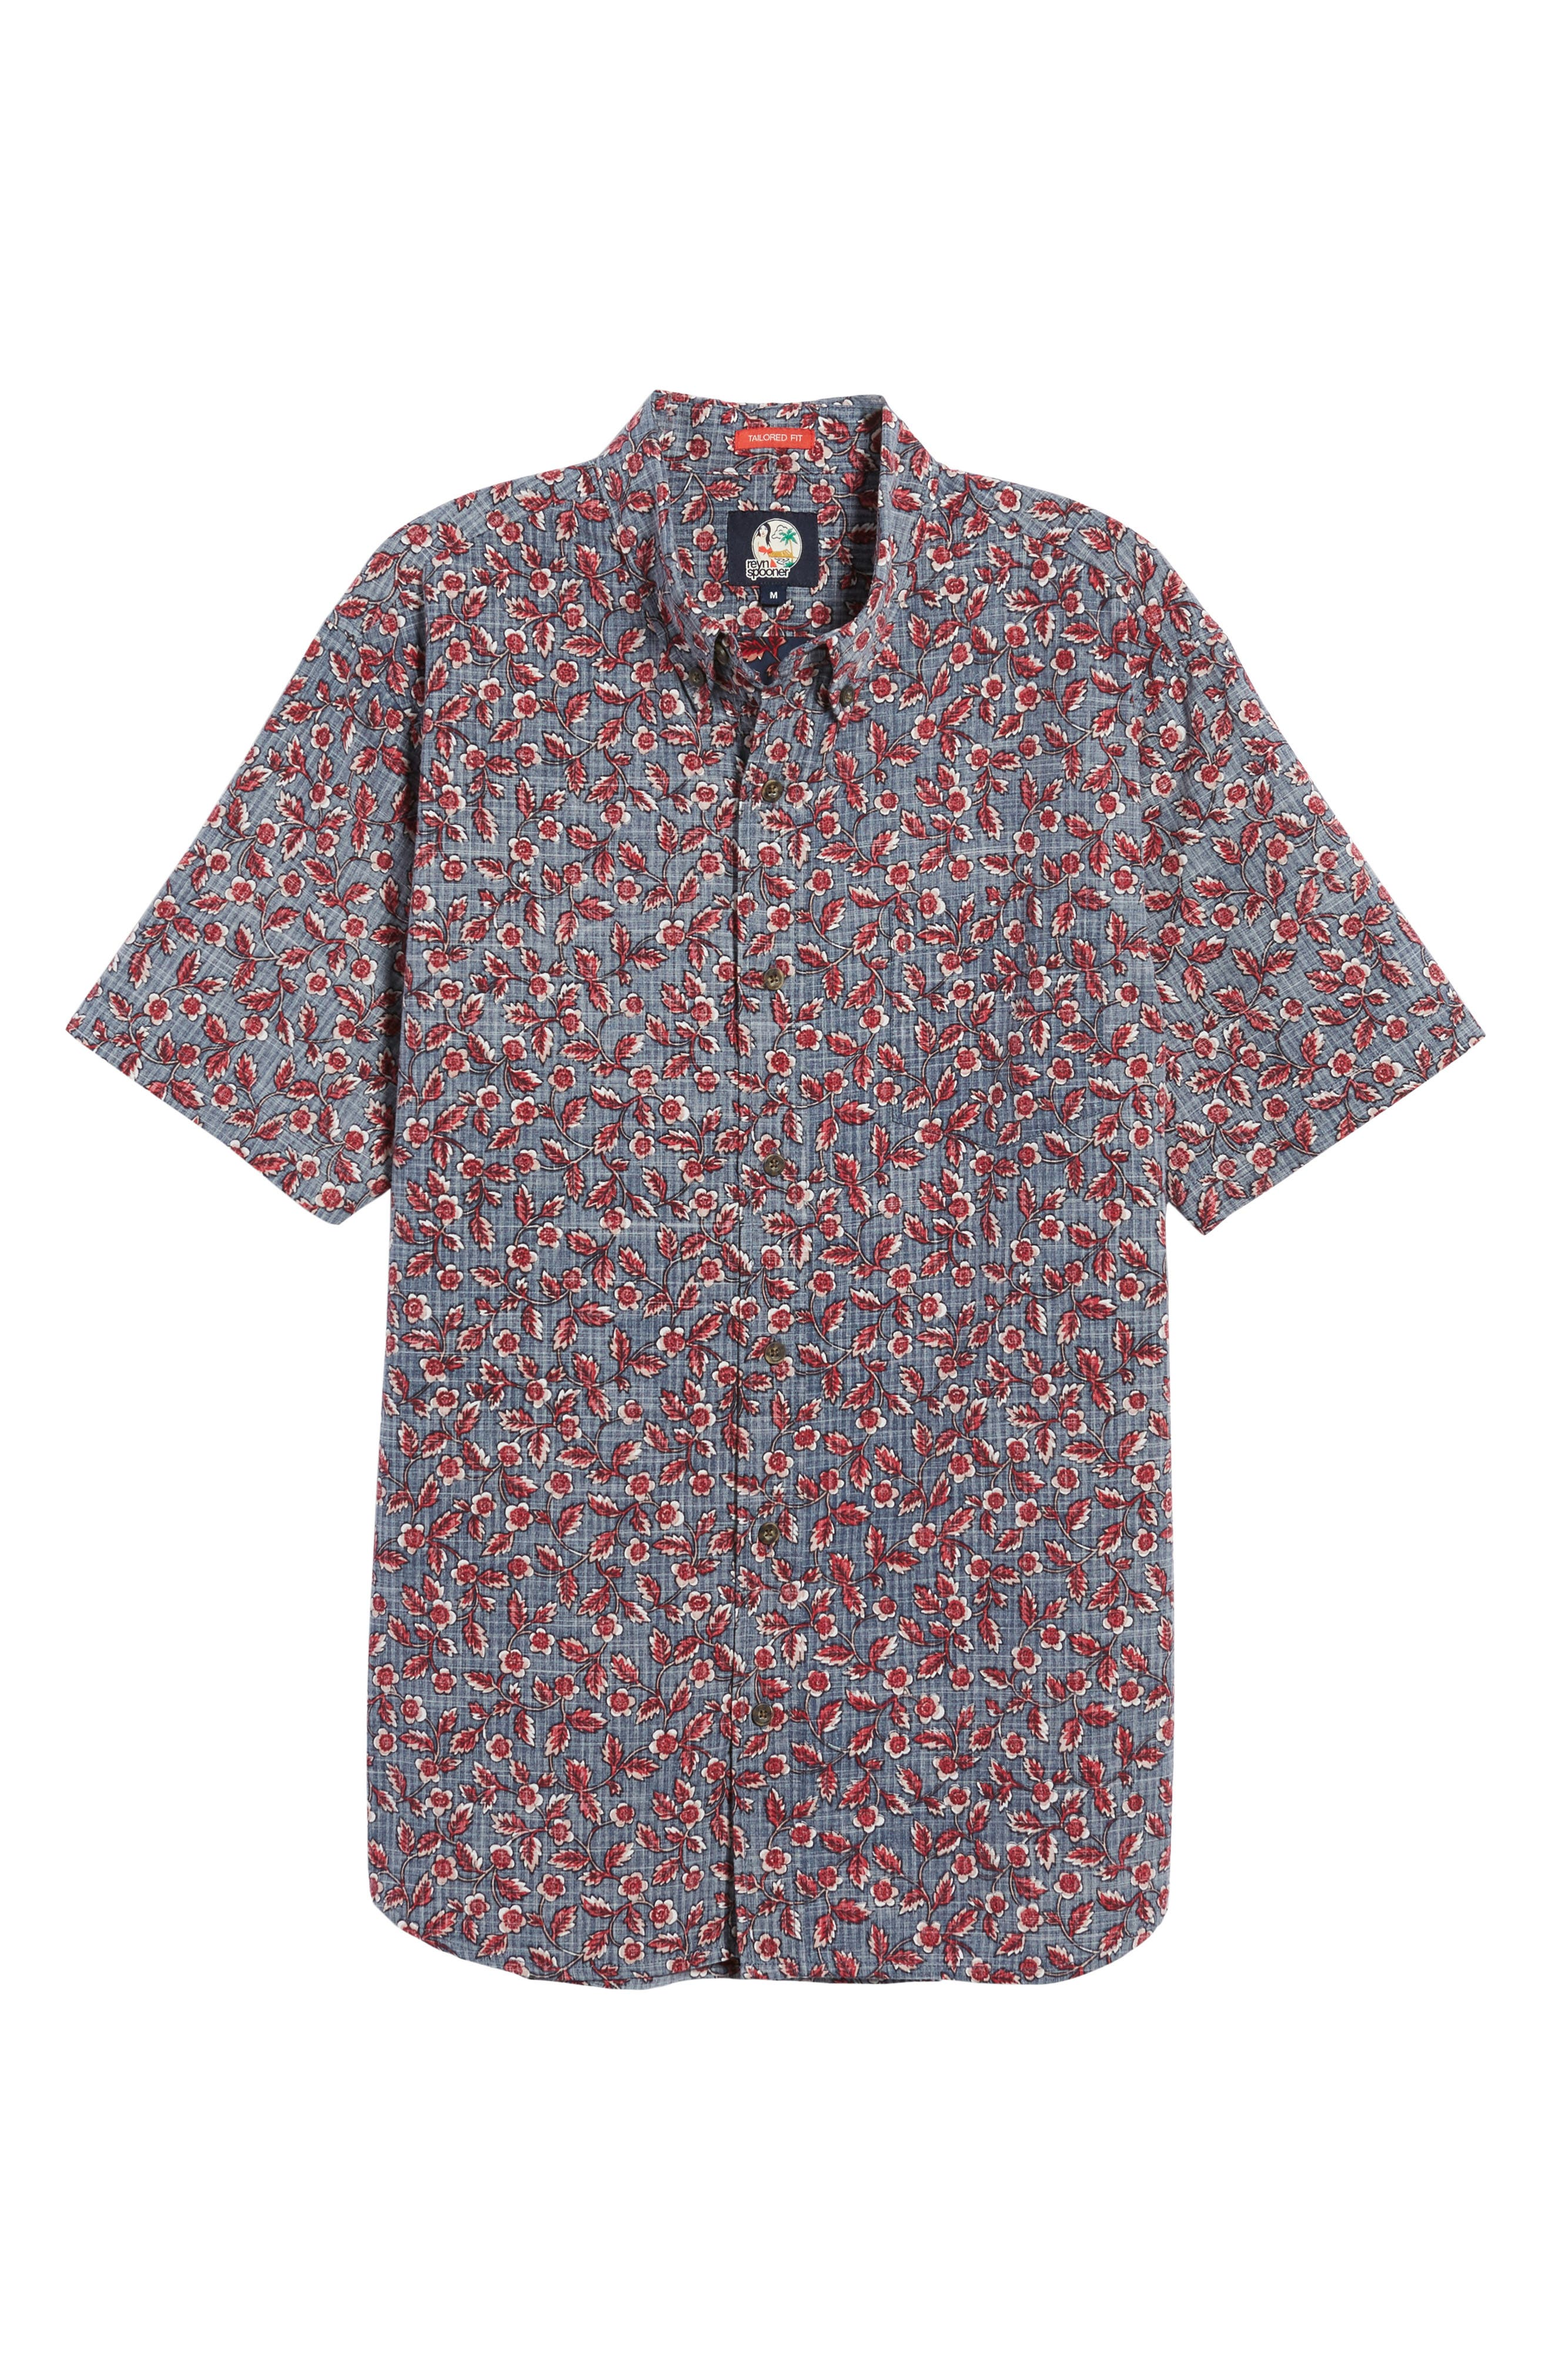 Upcountry Floral Regular Fit Sport Shirt,                             Alternate thumbnail 6, color,                             Navy